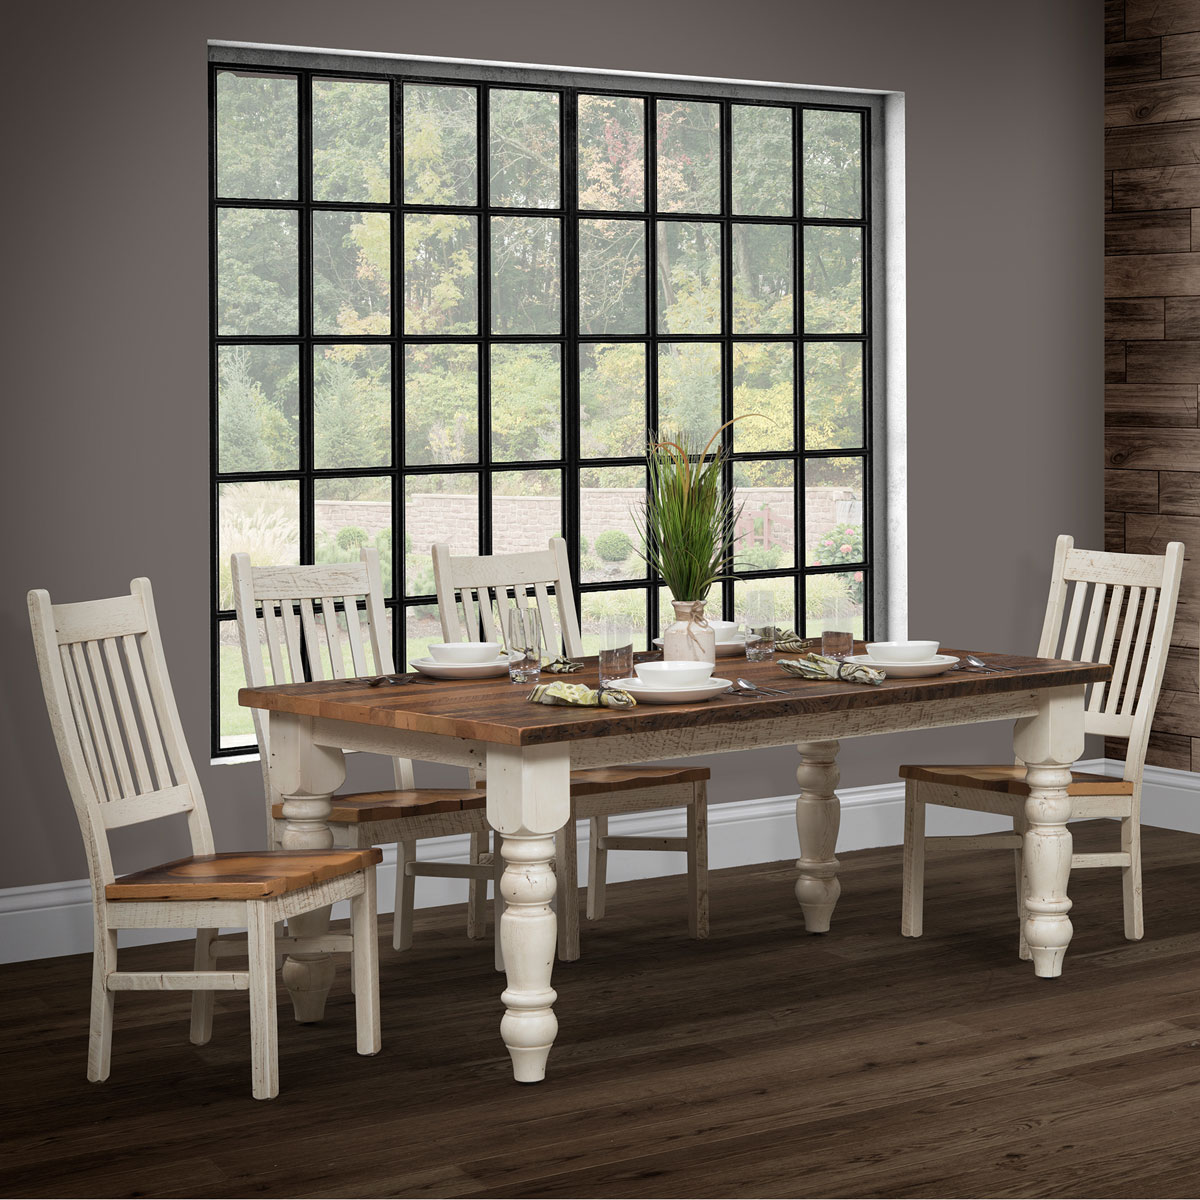 Farmhouse Dining Collection Urban Barnwood Furniture King Dinettes